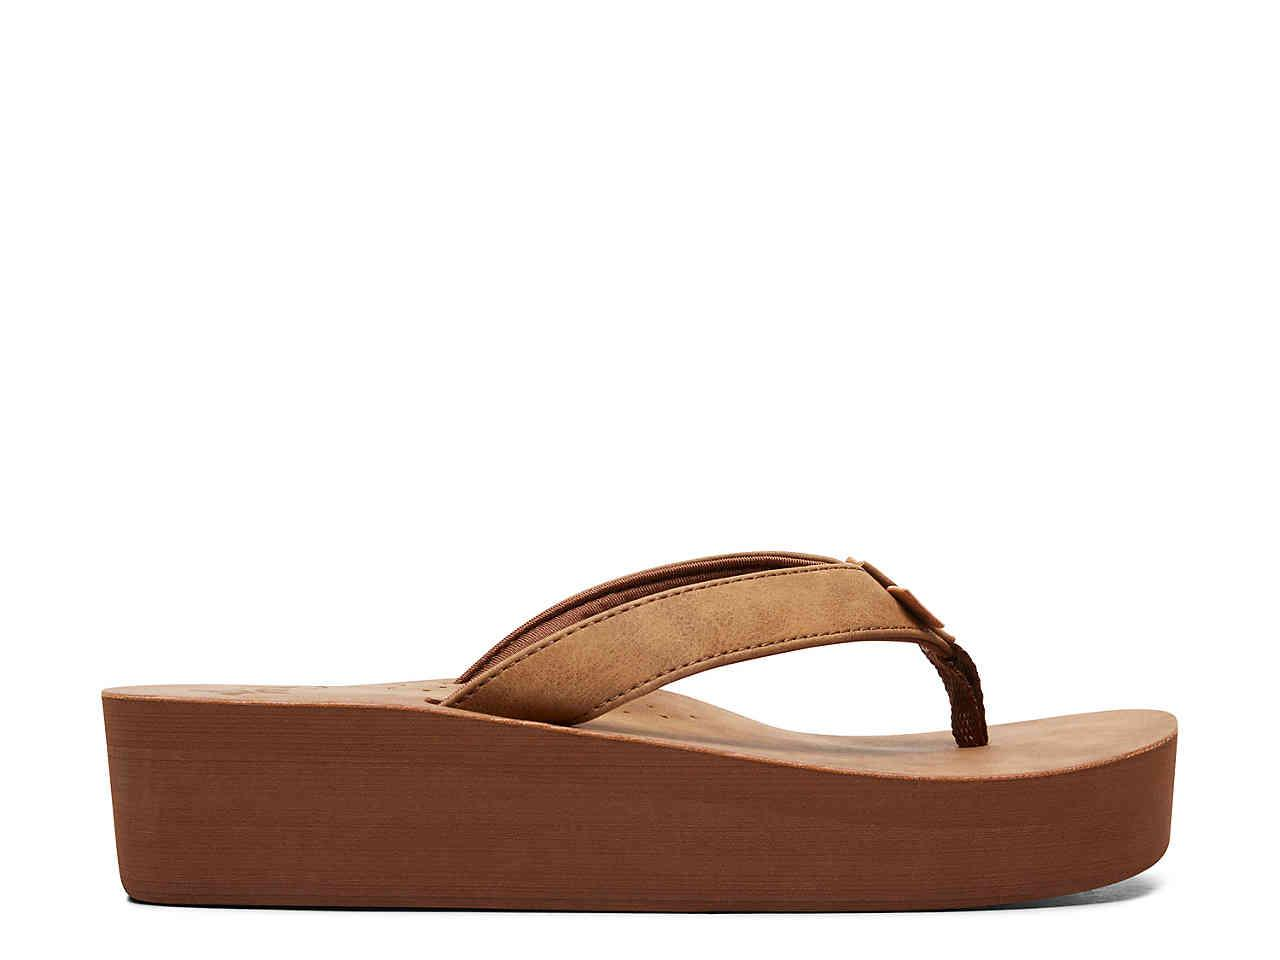 3e74d4bab Roxy - Brown Melinda Wedge Flip Flop - Lyst. View fullscreen